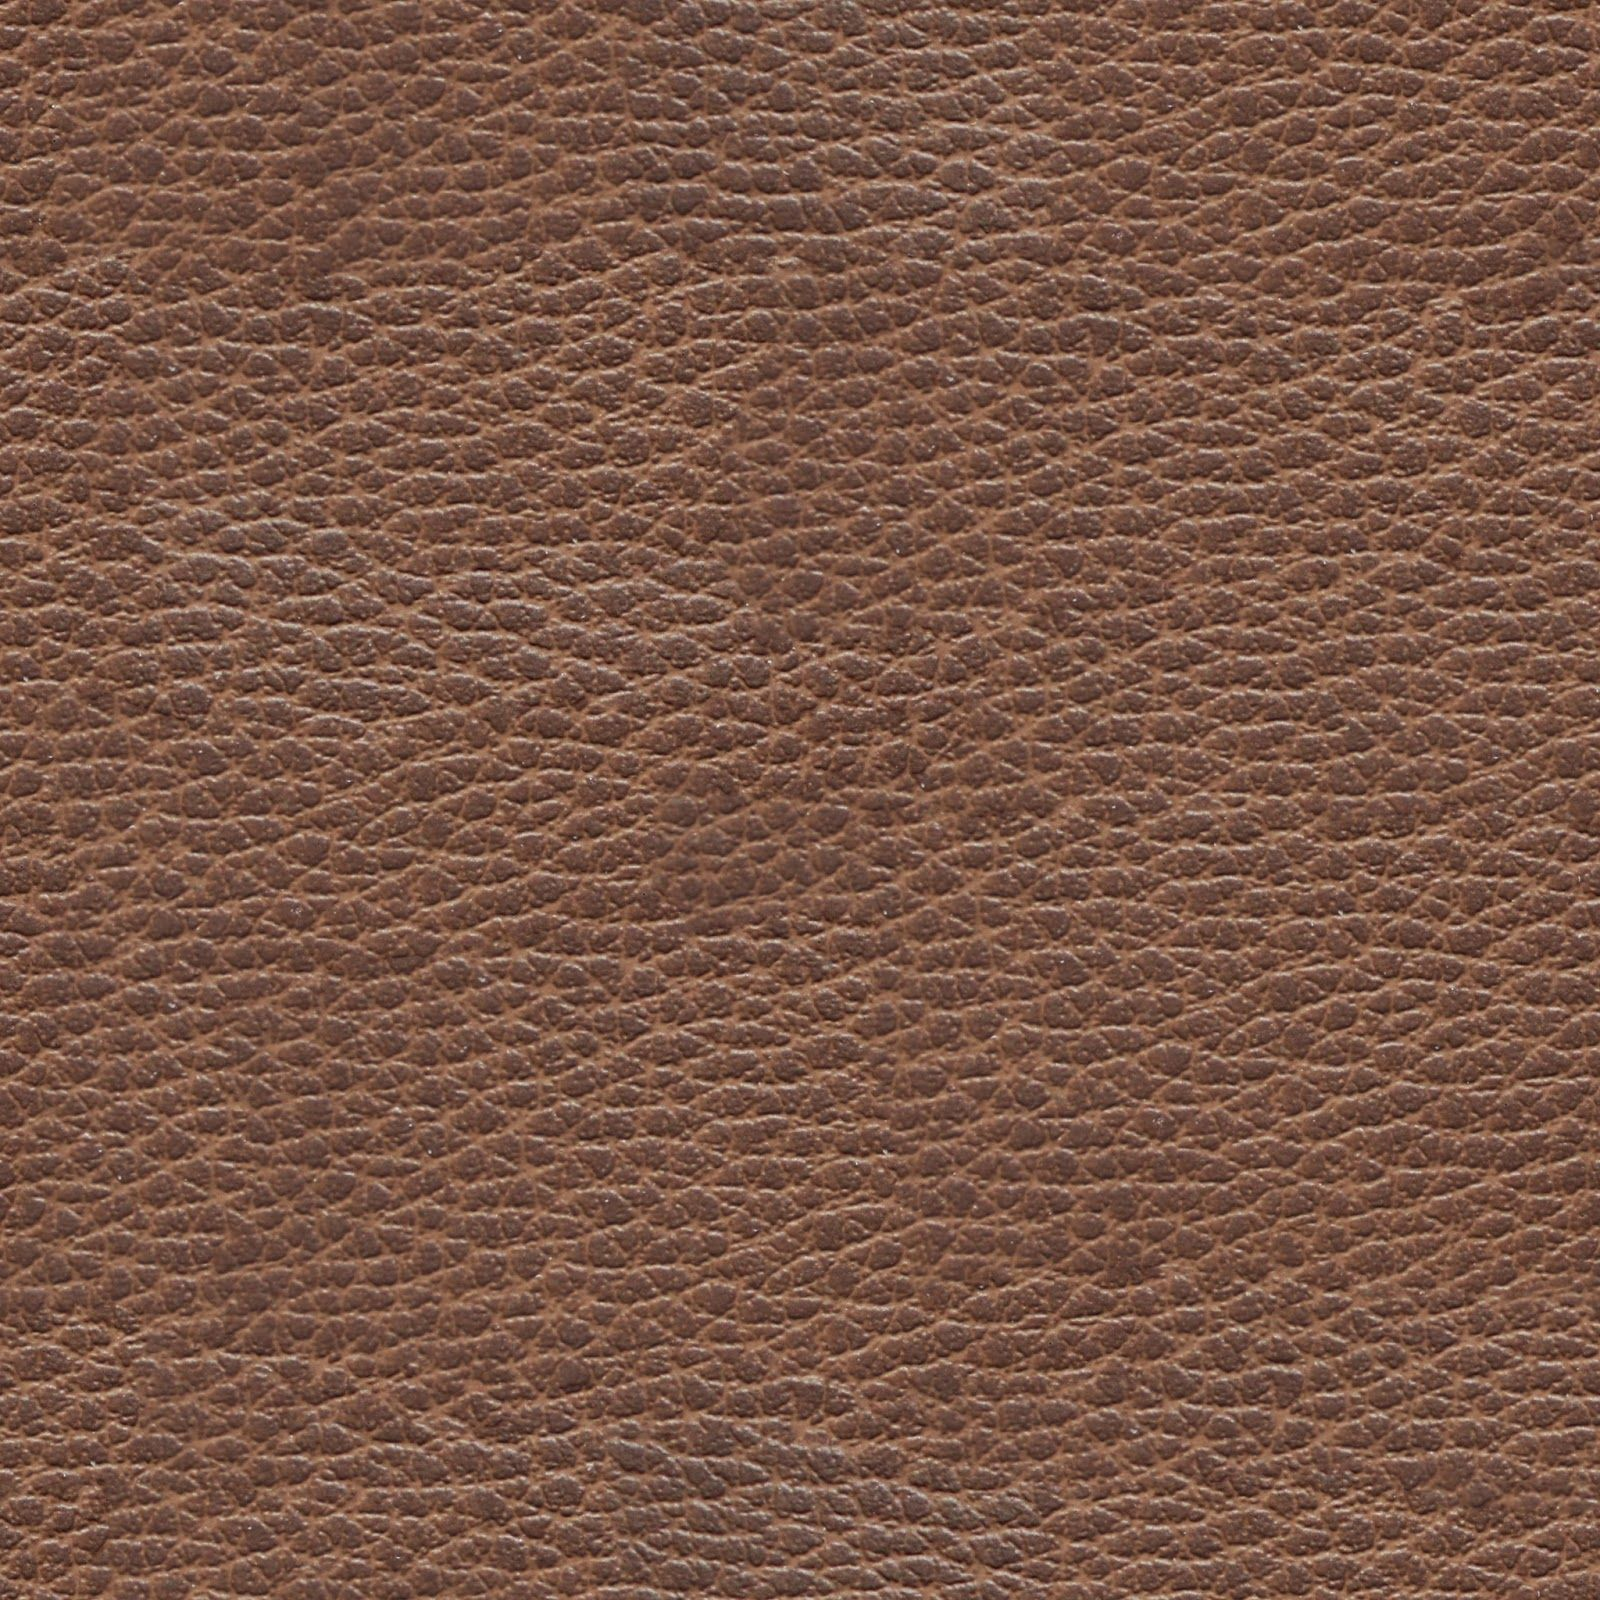 Brown Seamless Fabric Textures Seamless Brown Leather Texture Maps Texturise Ornamentai